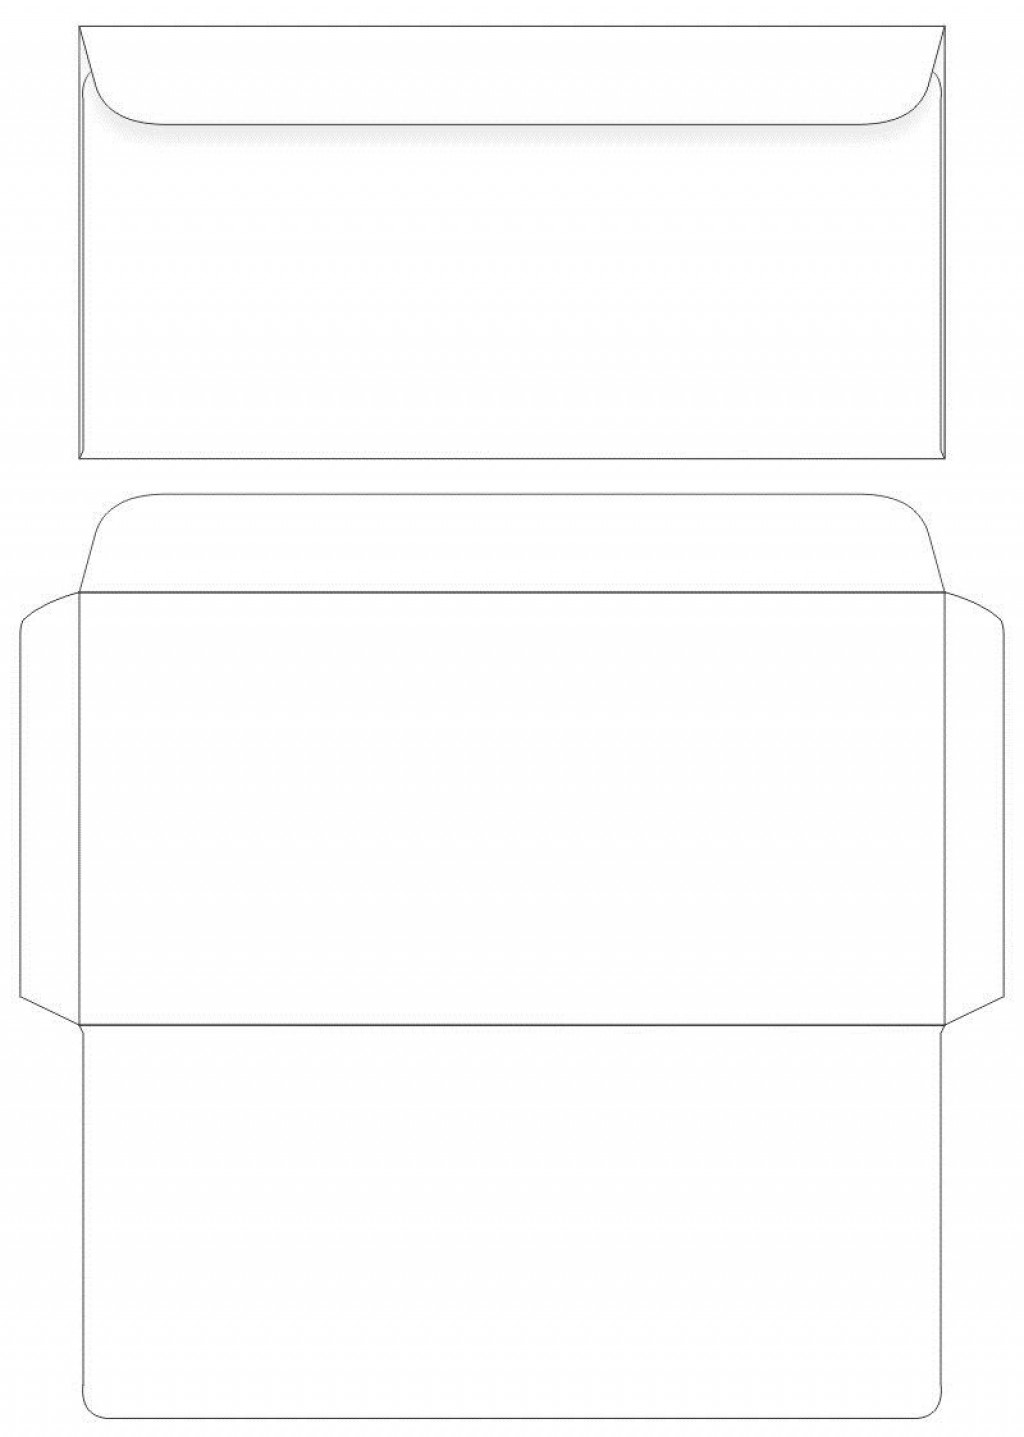 007 Unforgettable Envelope Label Template Free Inspiration  DownloadLarge